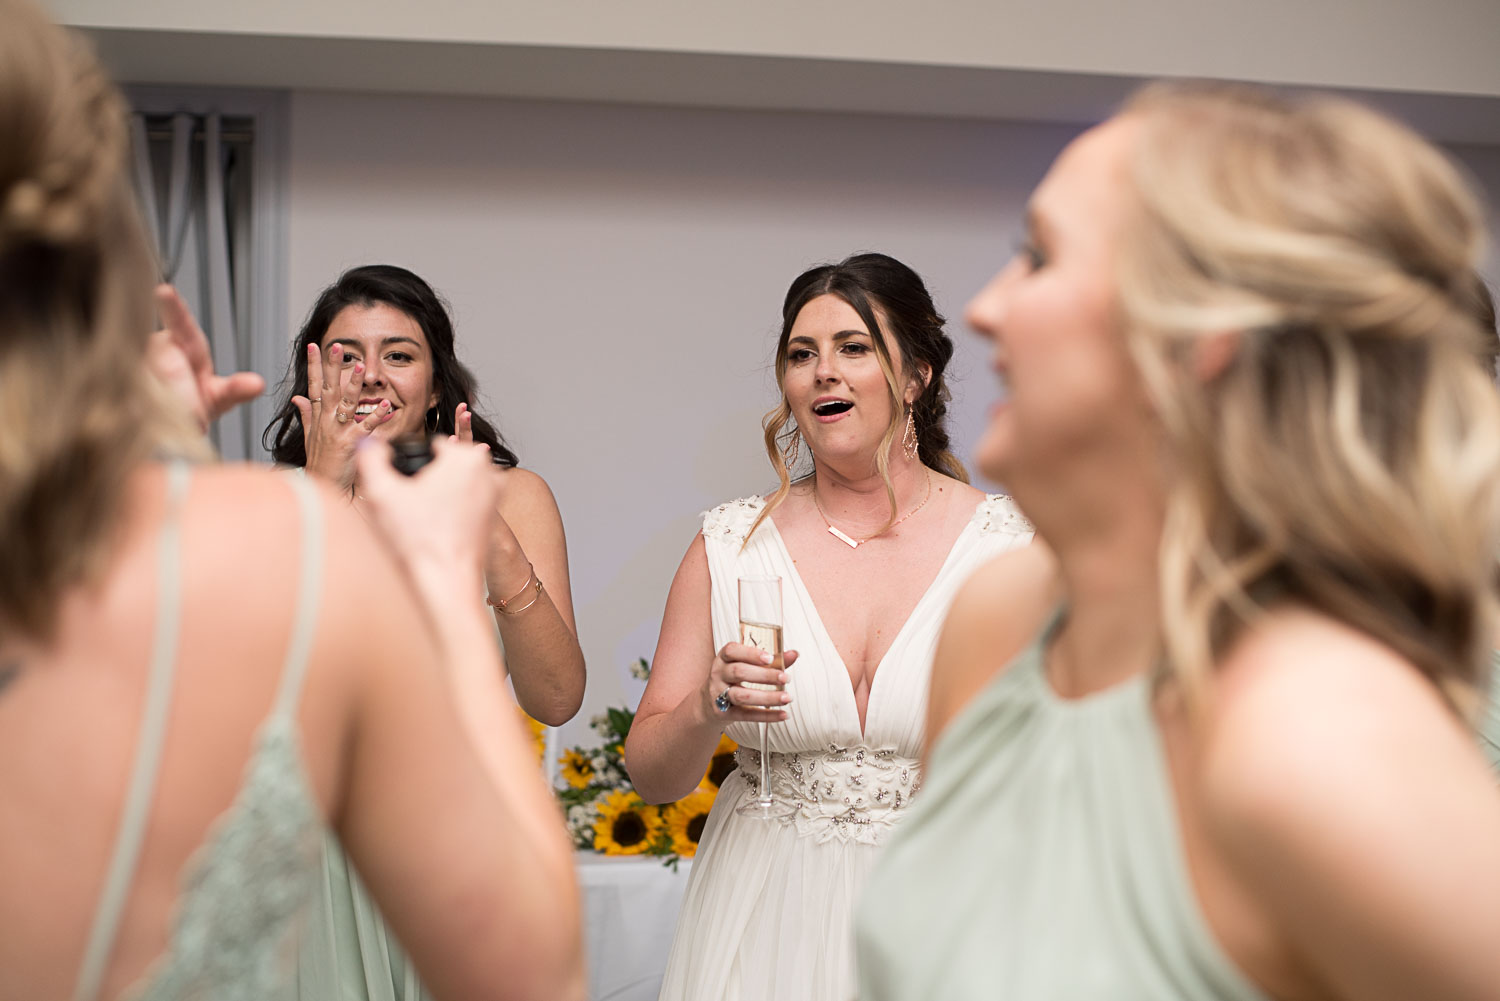 135 Bride and bridesmaids at reception.jpg